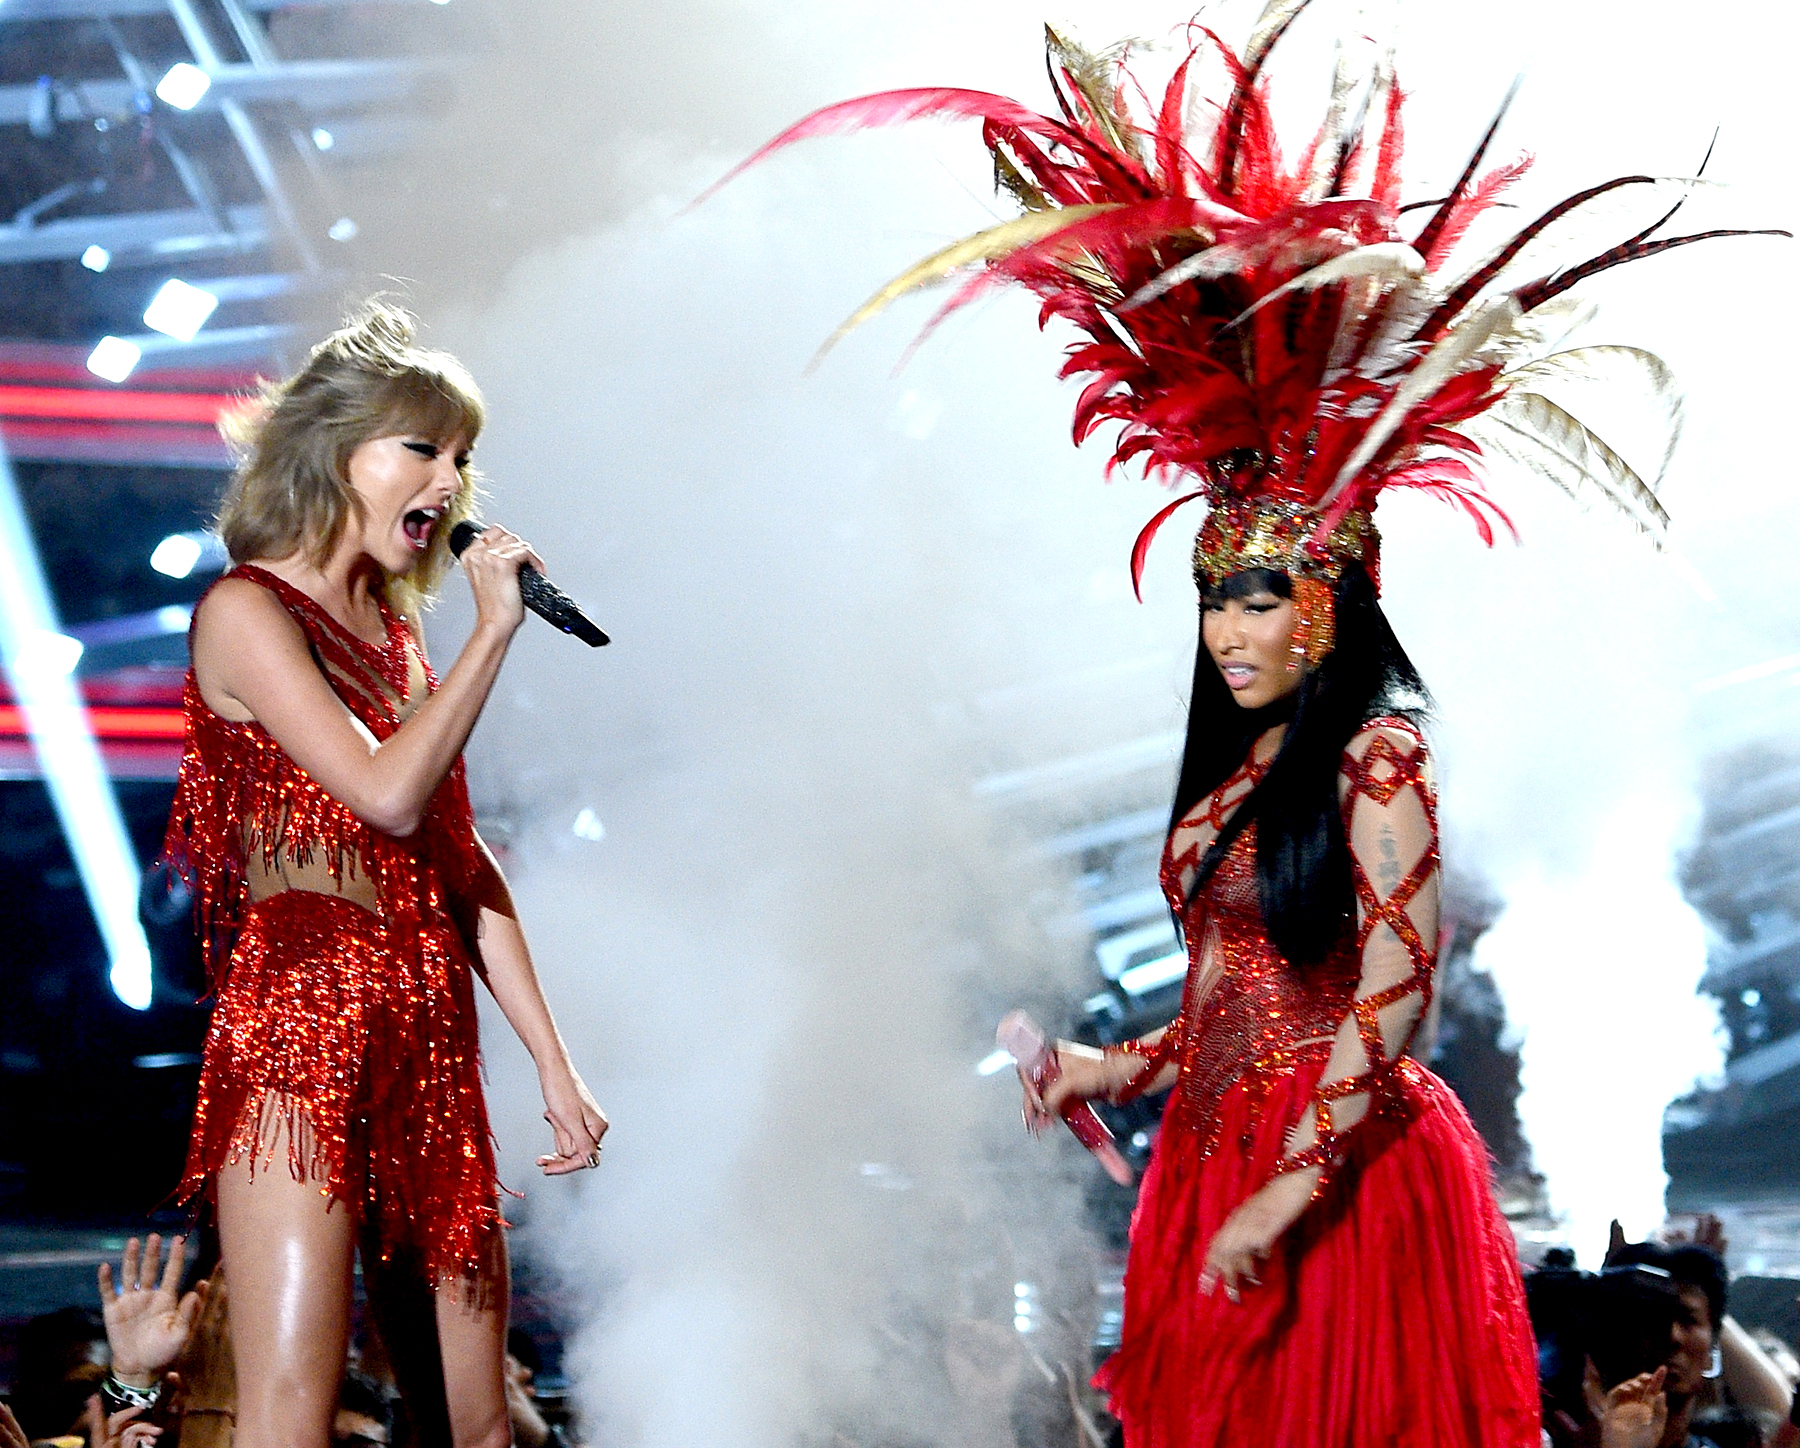 Taylor Swift (left) and Nicki Minaj perform onstage during the 2015 MTV Video Music Awards at Microsoft Theater on August 30, 2015 in Los Angeles, California.